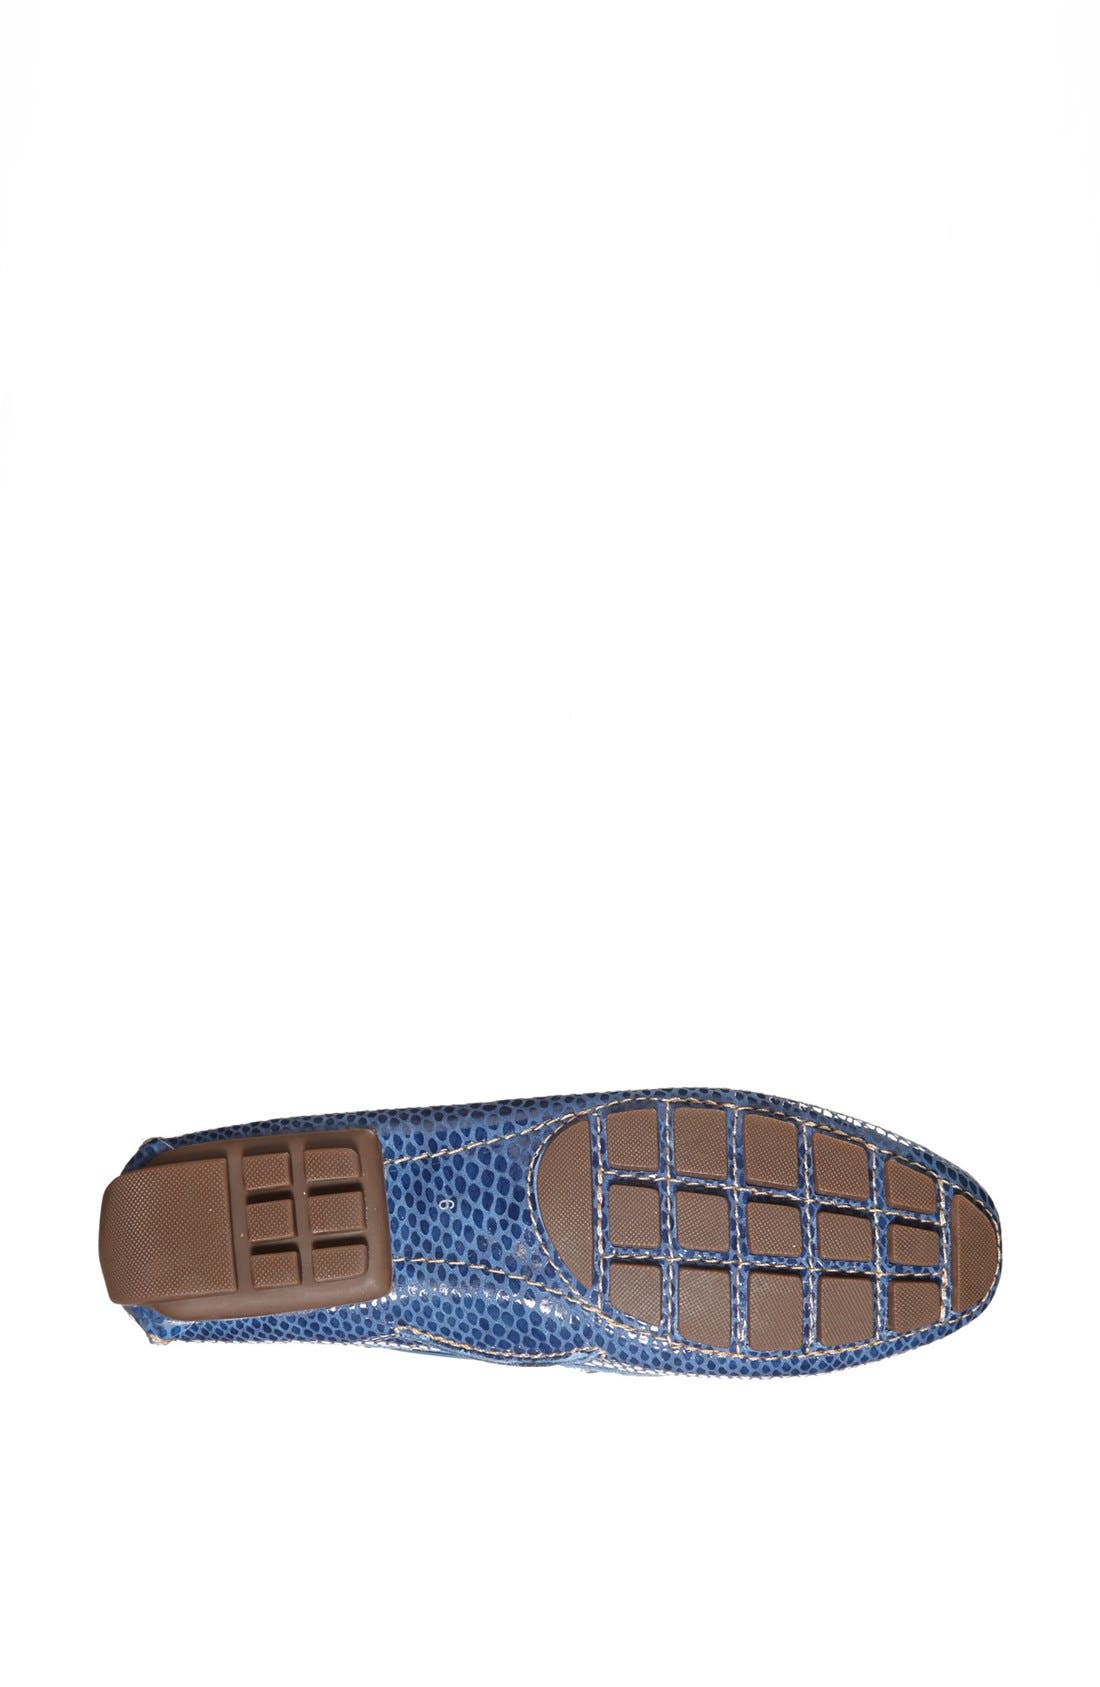 Alternate Image 4  - Marc Joseph New York 'Cypress Hill Snakes' Loafer